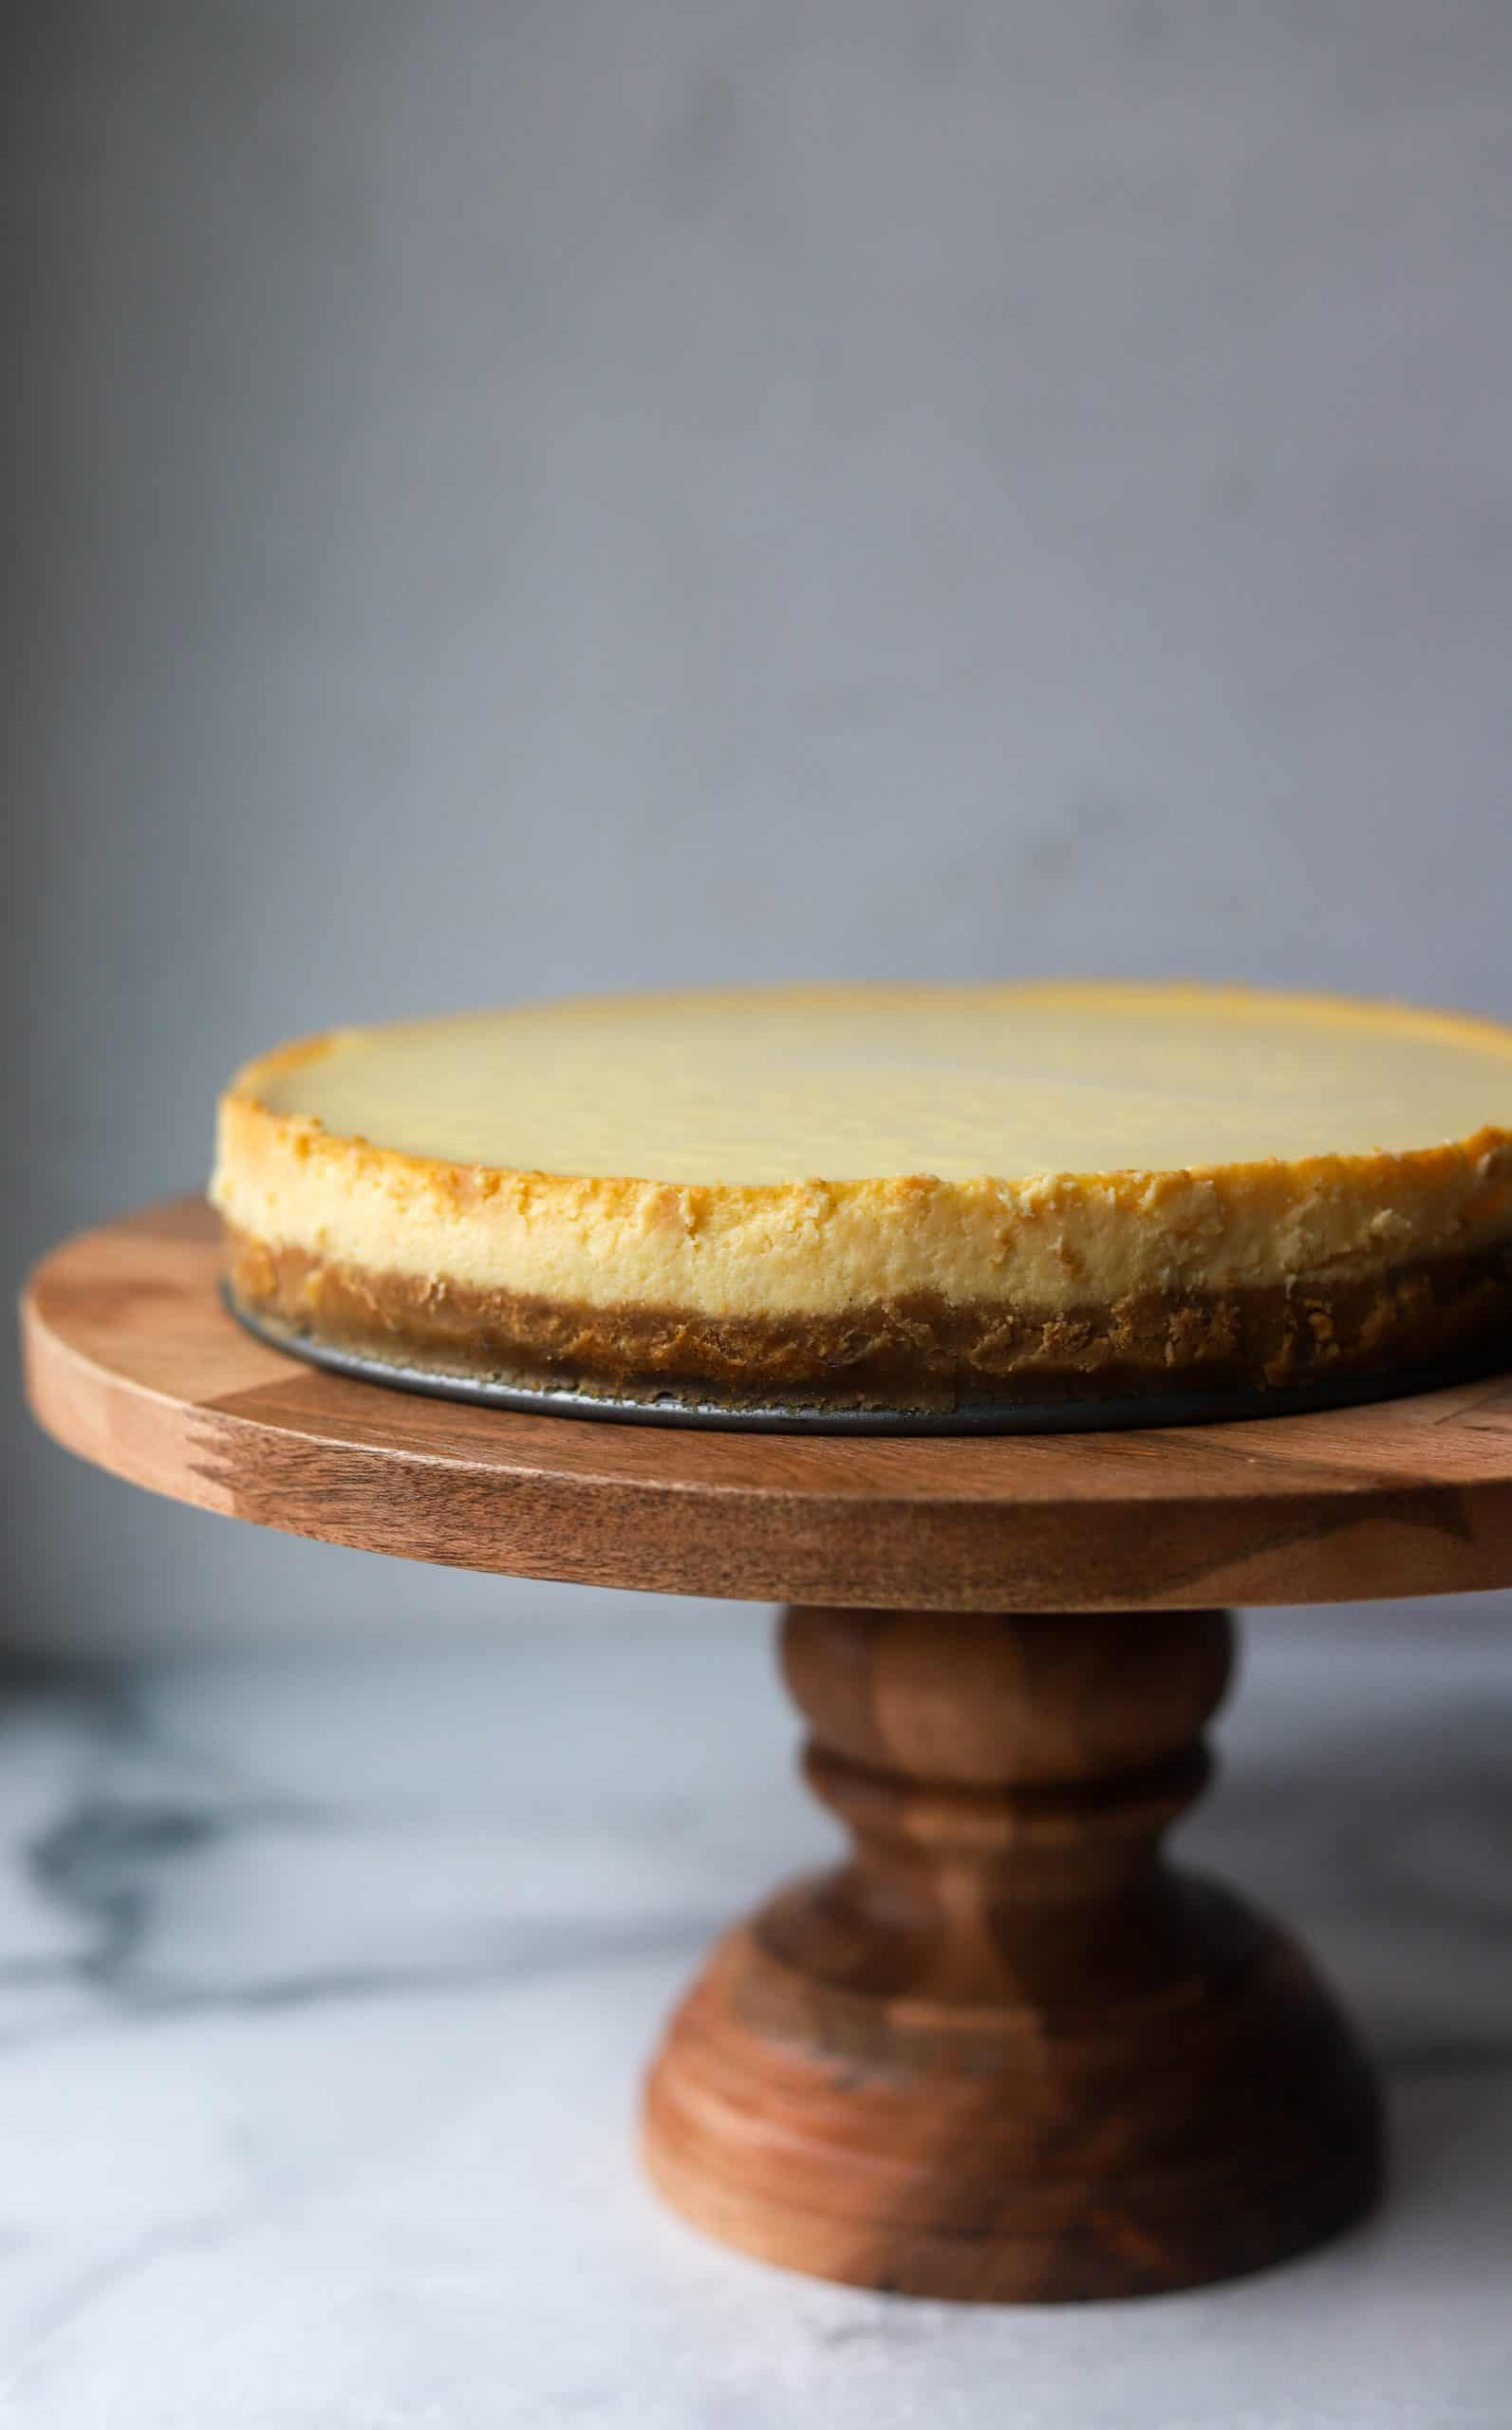 A whole cheesecake on a wooden cake stand.